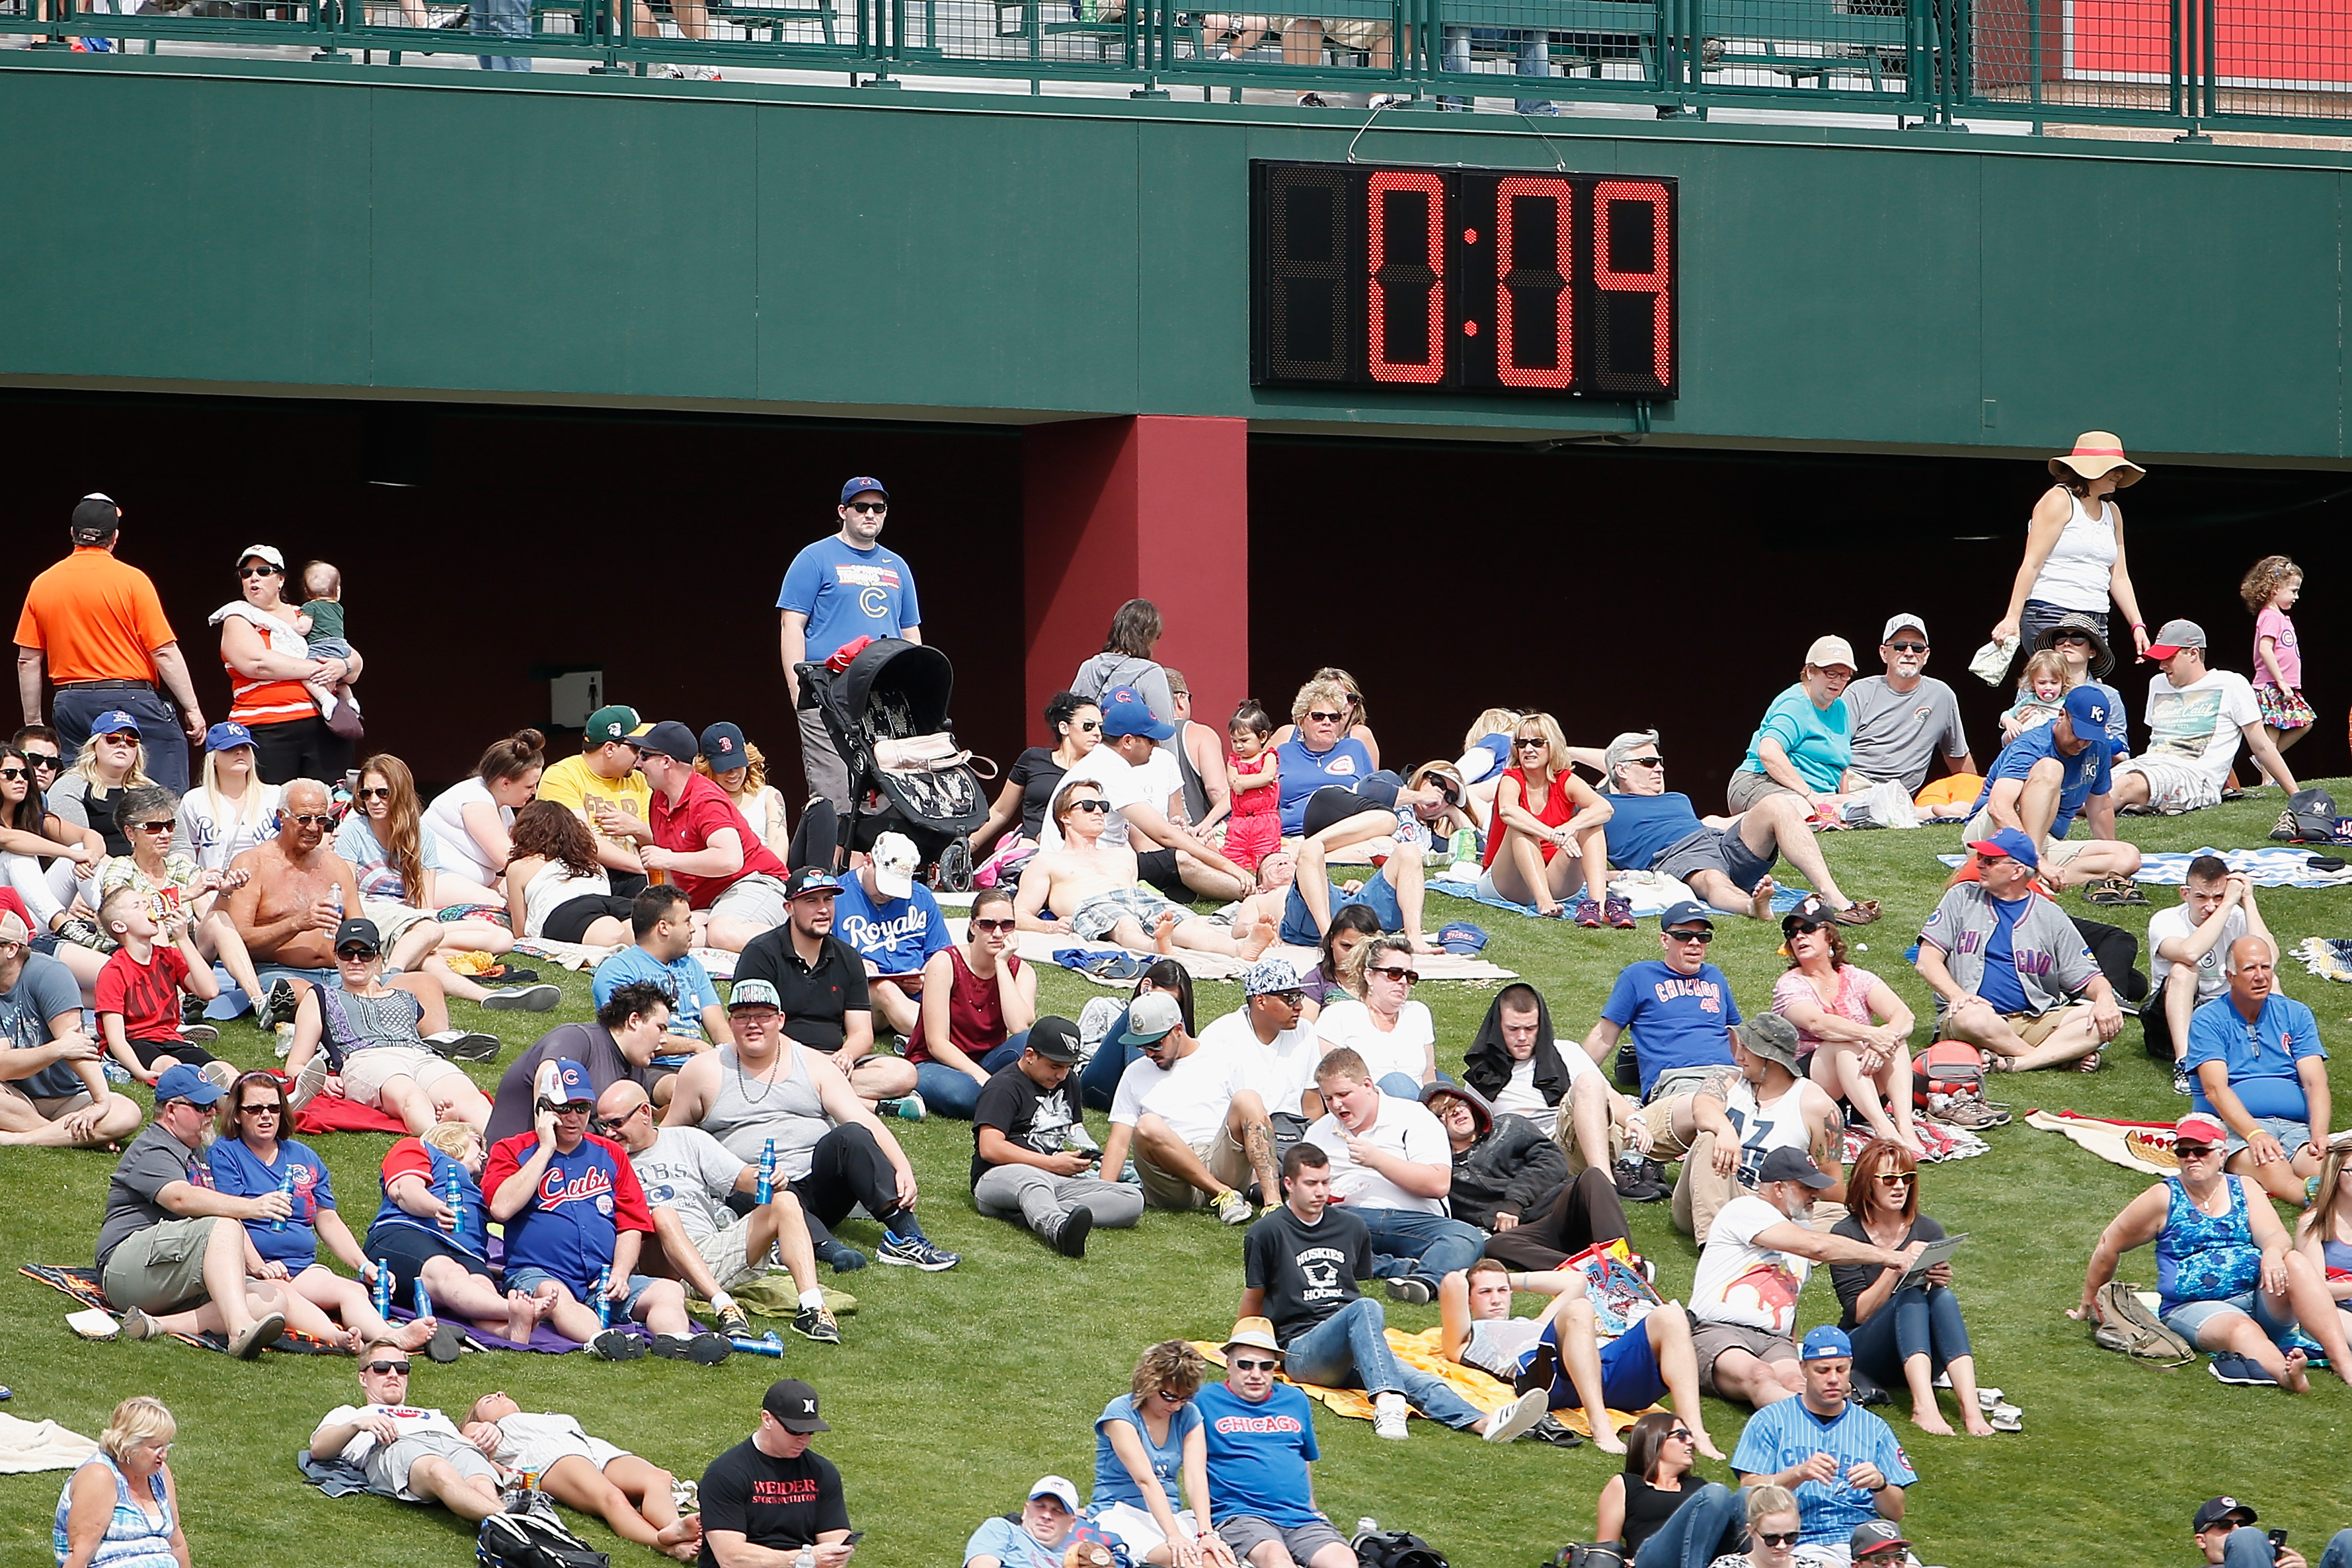 Here are some details about MLB's new pitch clocks - Bleed